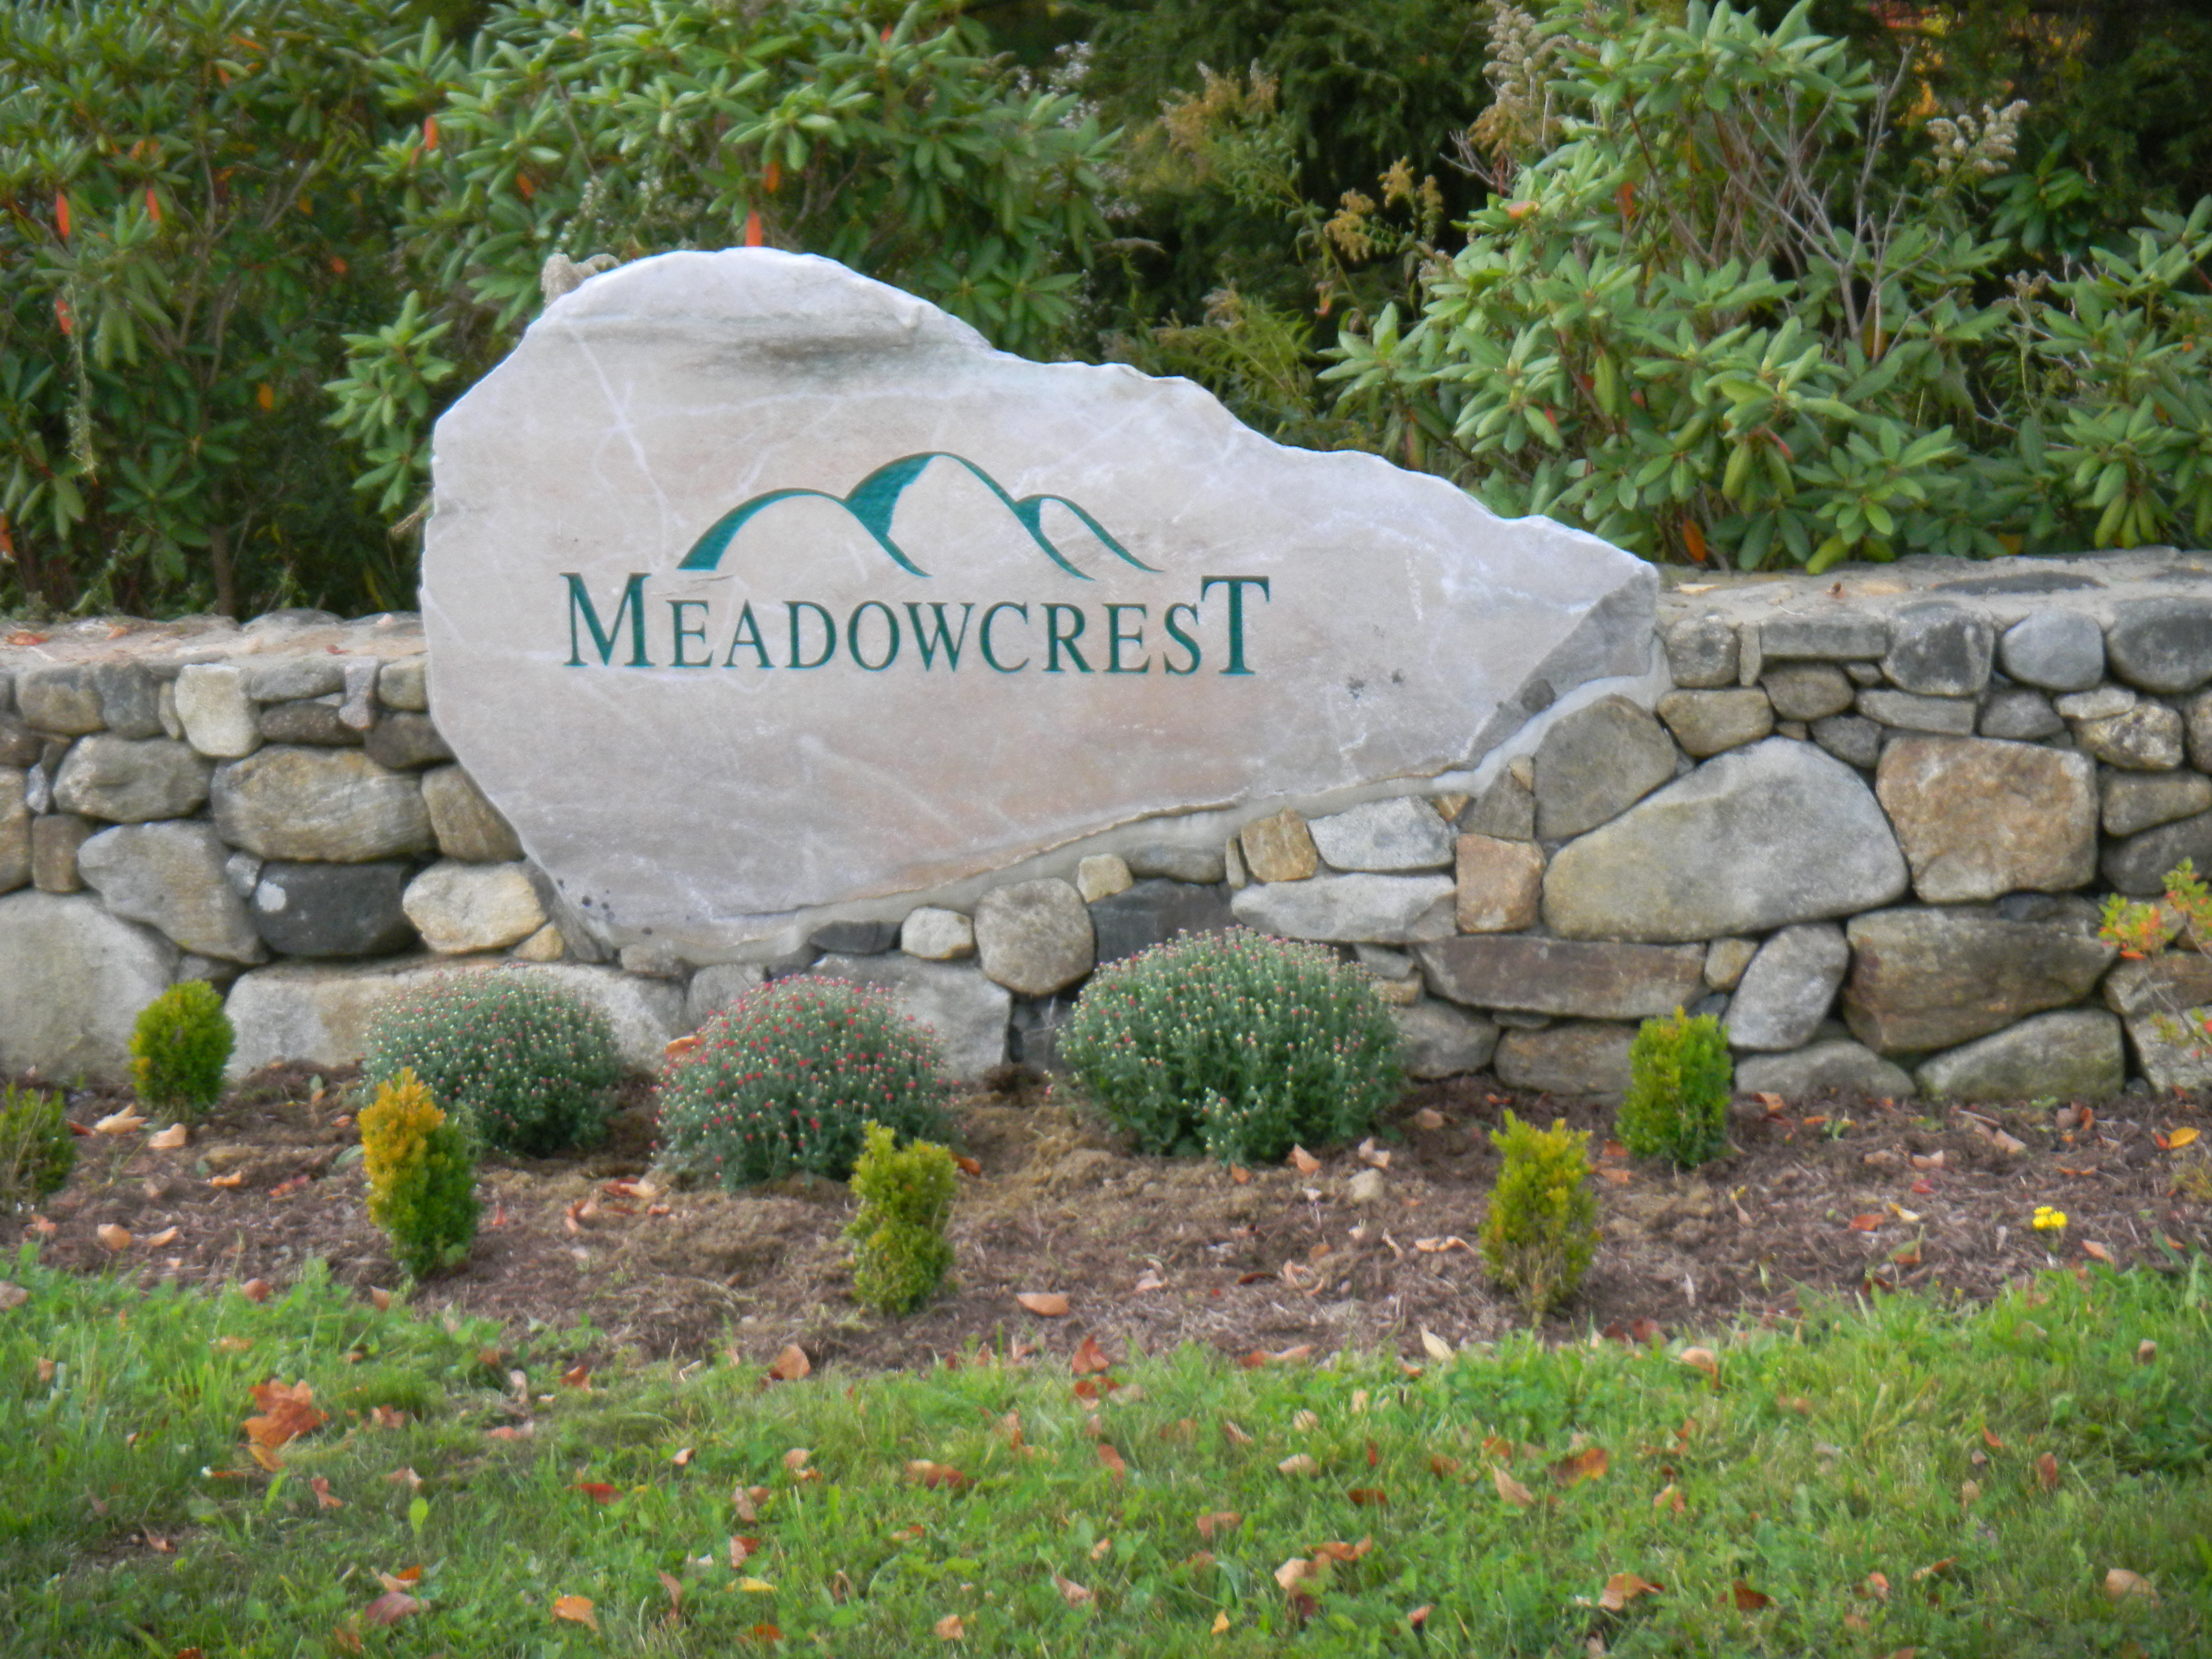 Terreno para Venda às Meadowcrest At Litchfield Hills 6 East Street South Goshen, Connecticut, 06756 Estados Unidos